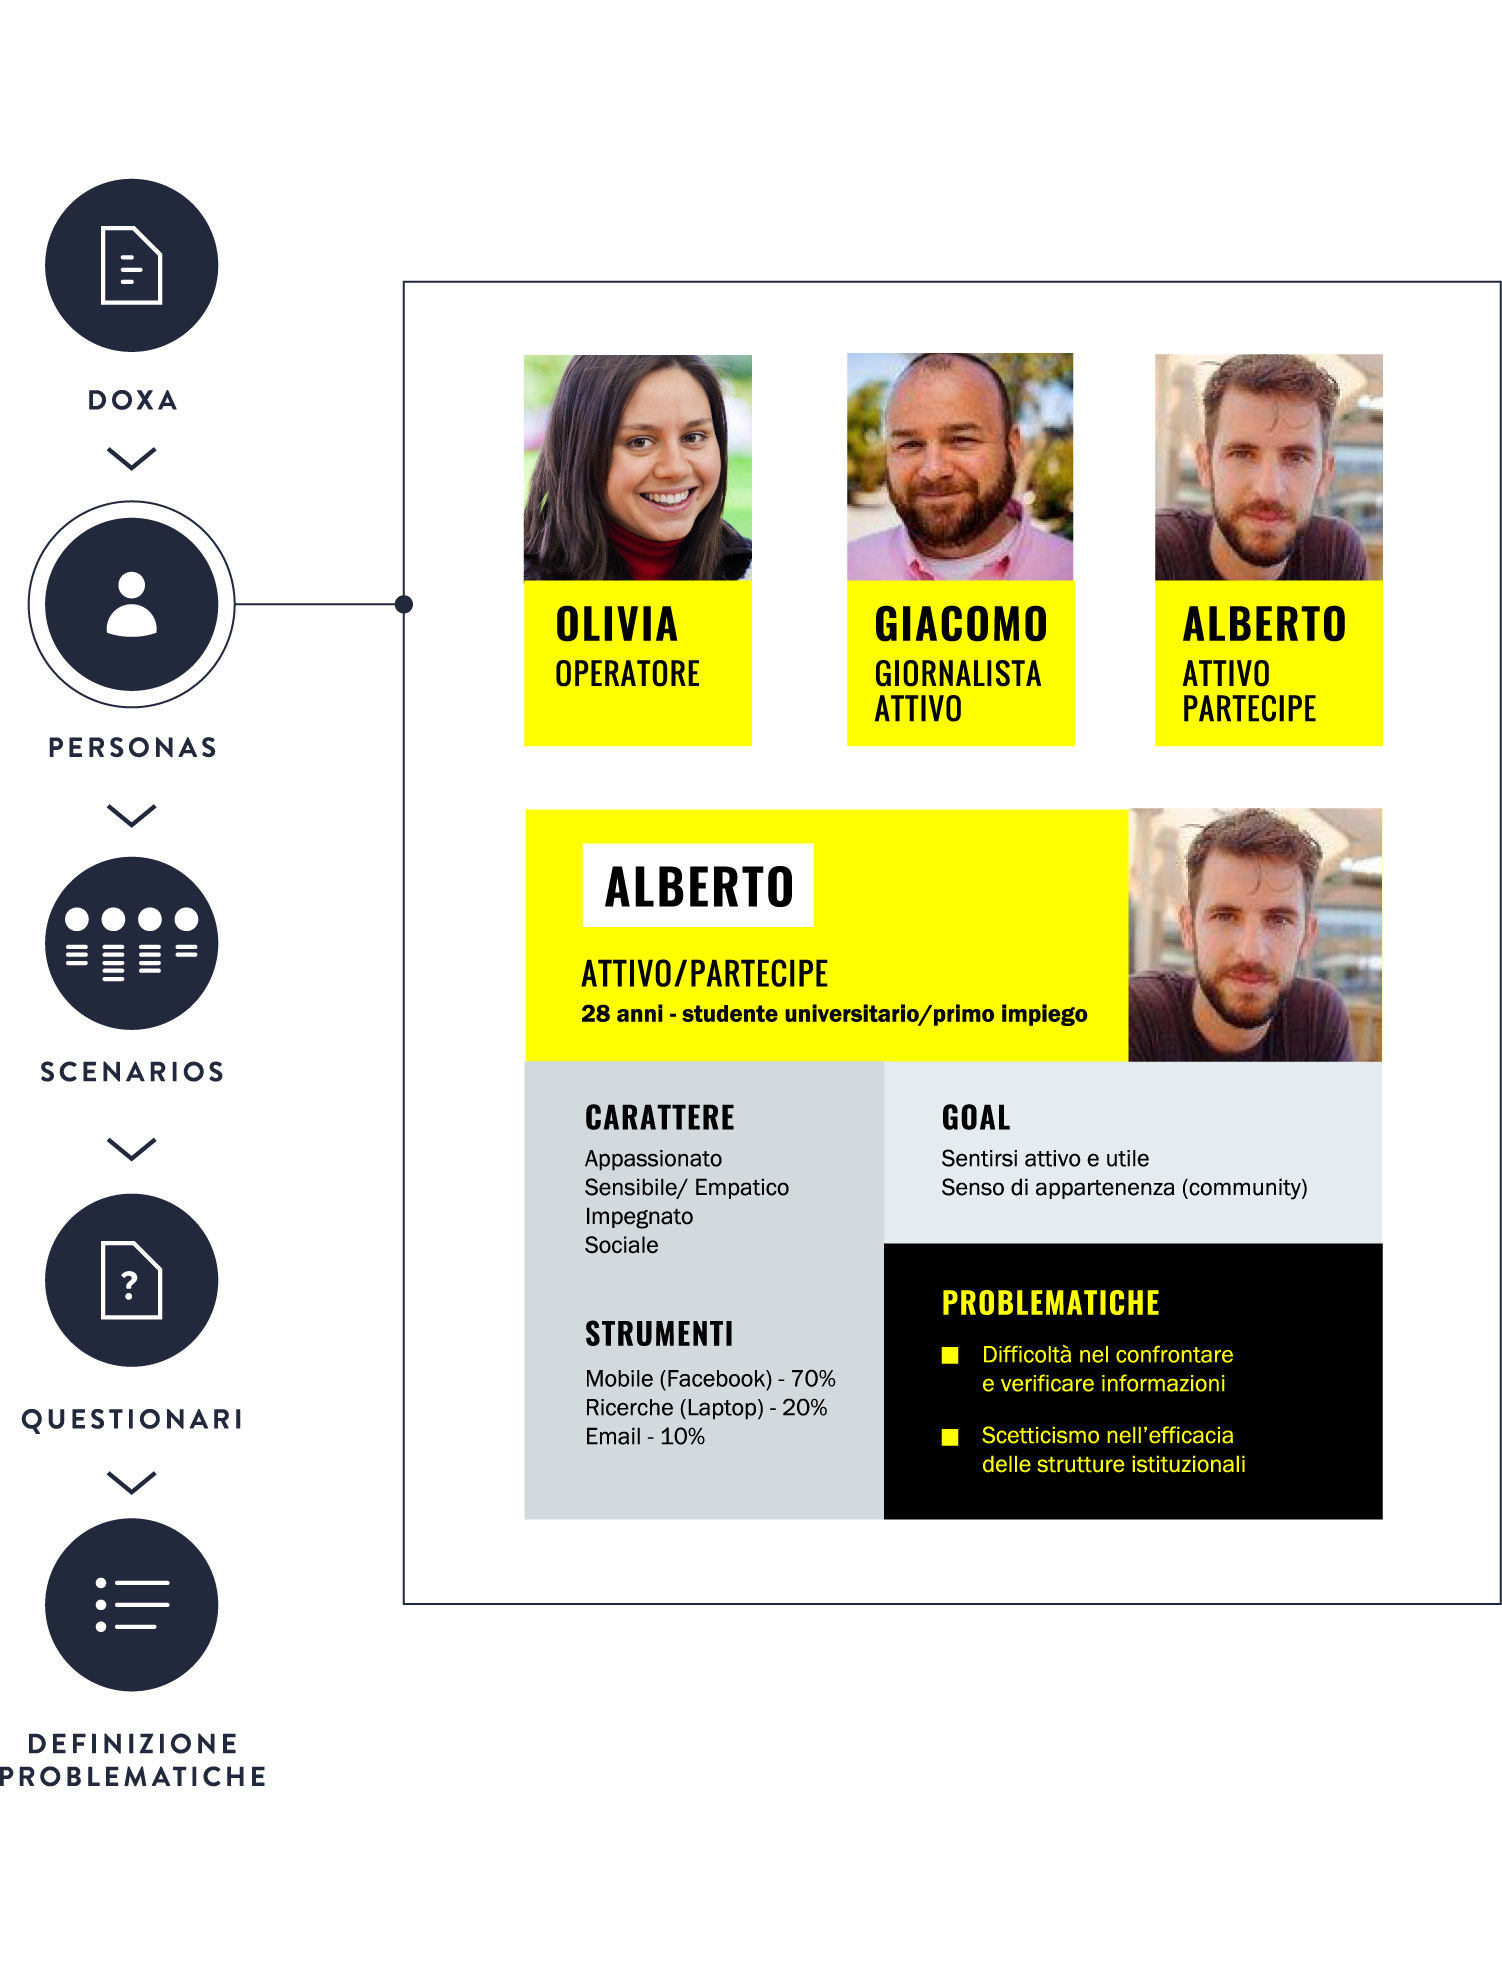 image of the personas